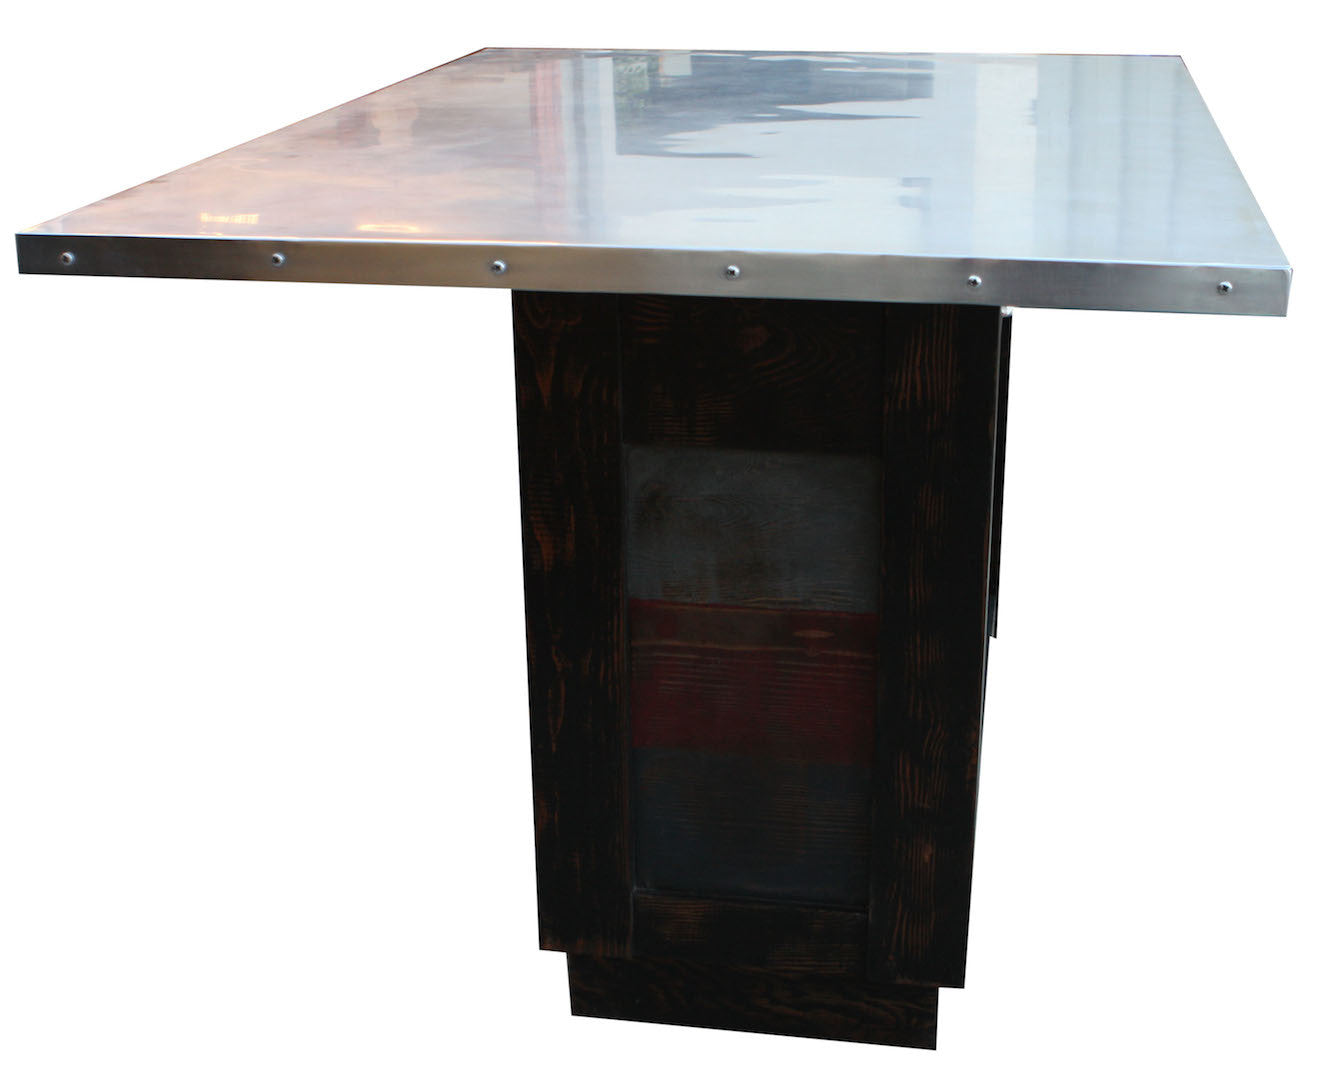 ... Custom Zinc Top Reclaimed Wood Kitchen Island